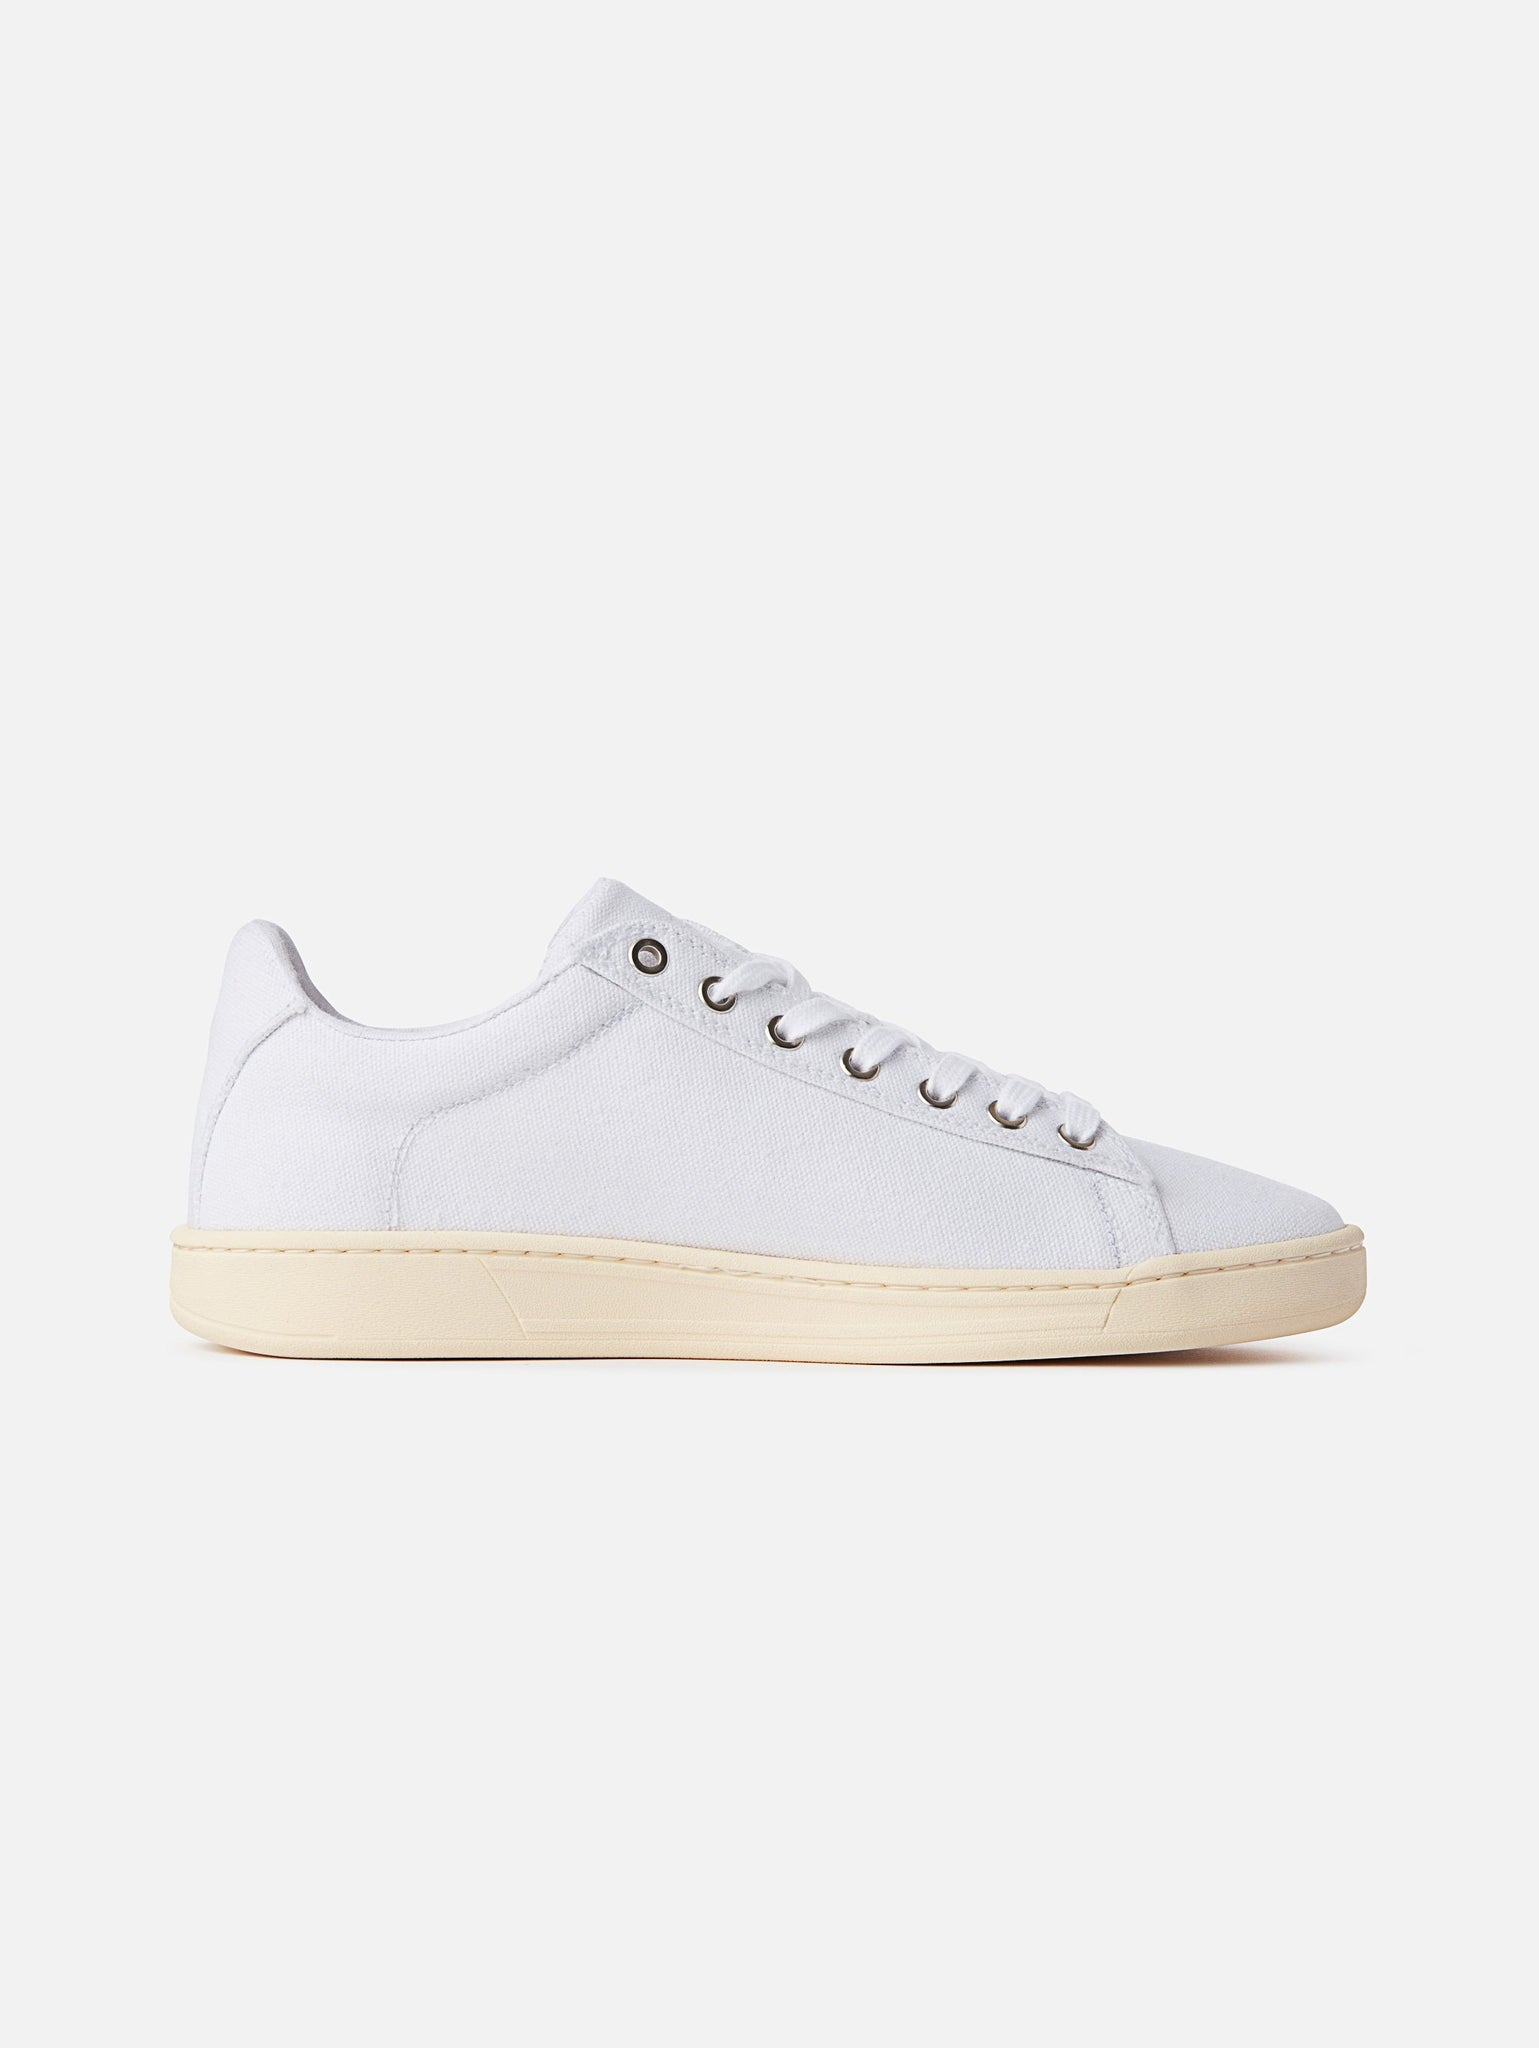 Hope - Vegan White Canvas, White Sole